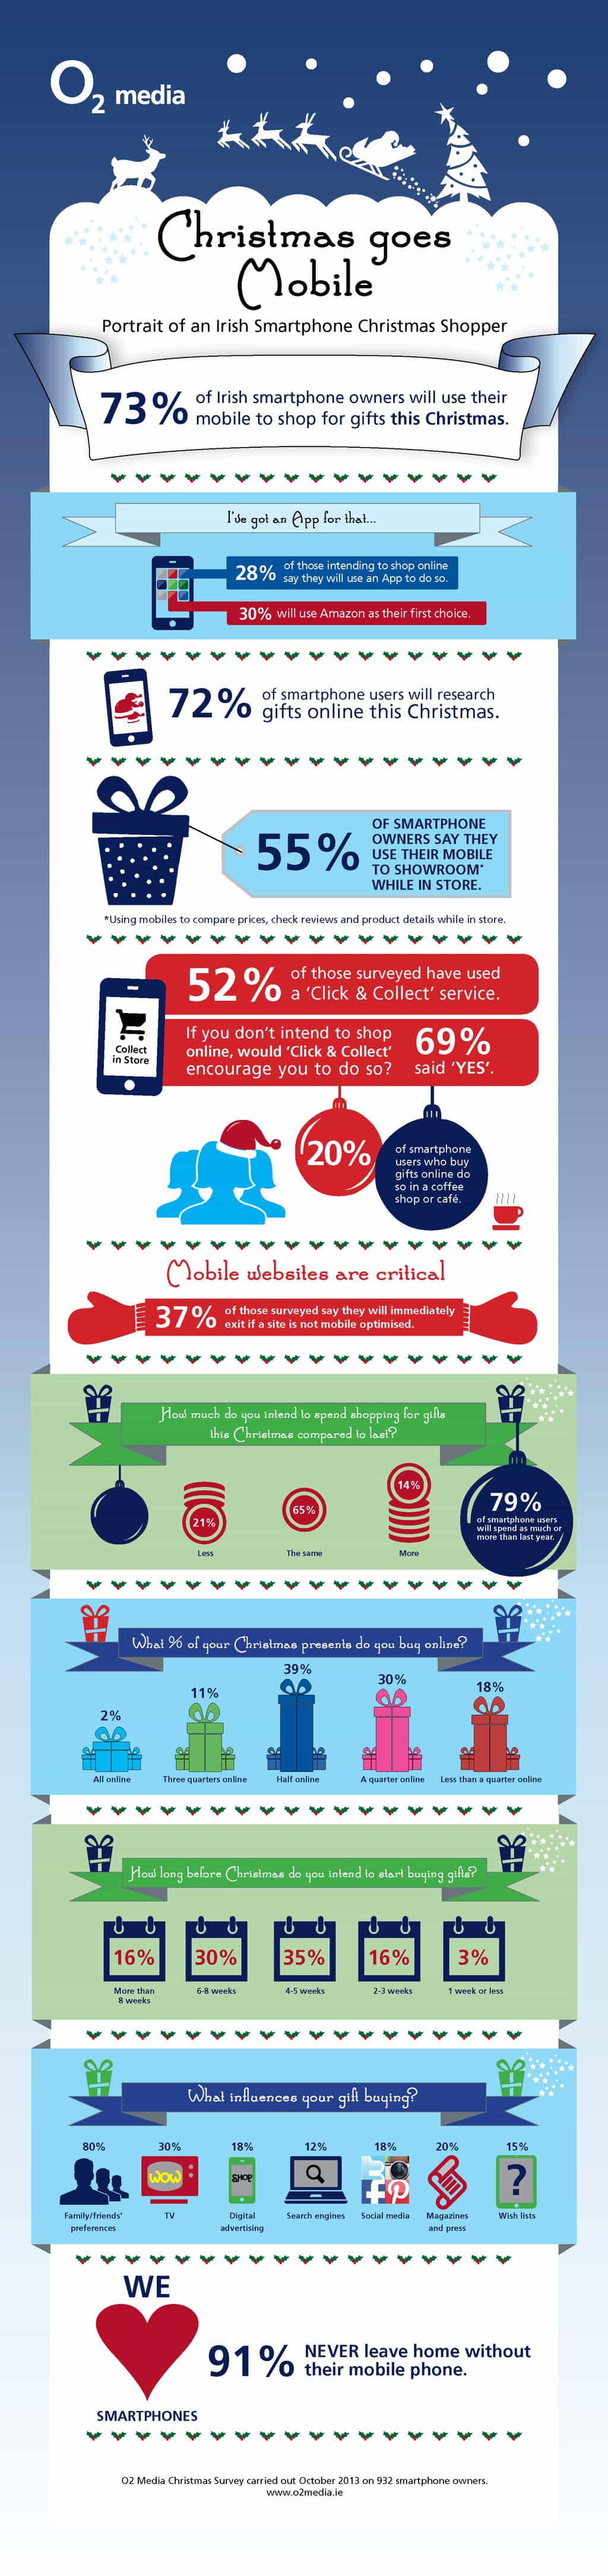 Christmas 2013 in Ireland is mobile – the portrait of an Irish Smartphone Christmas Shopper O2 Media Research